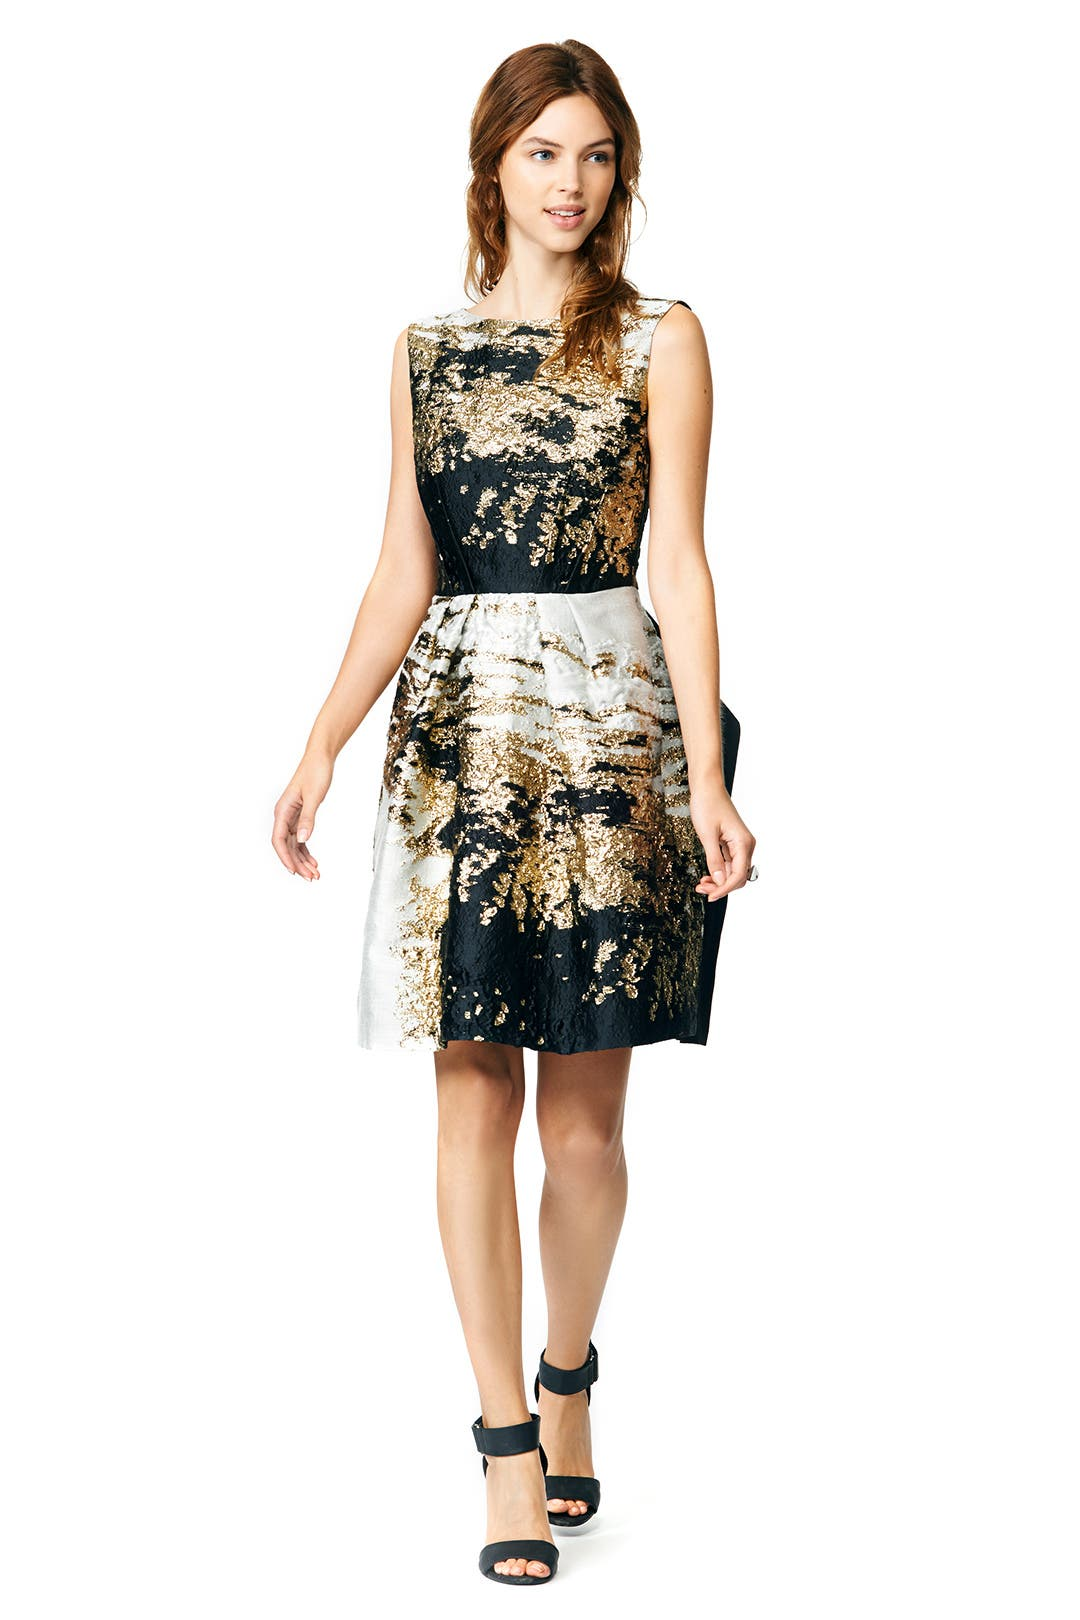 Brushed With Gold Dress by Alberta Ferretti